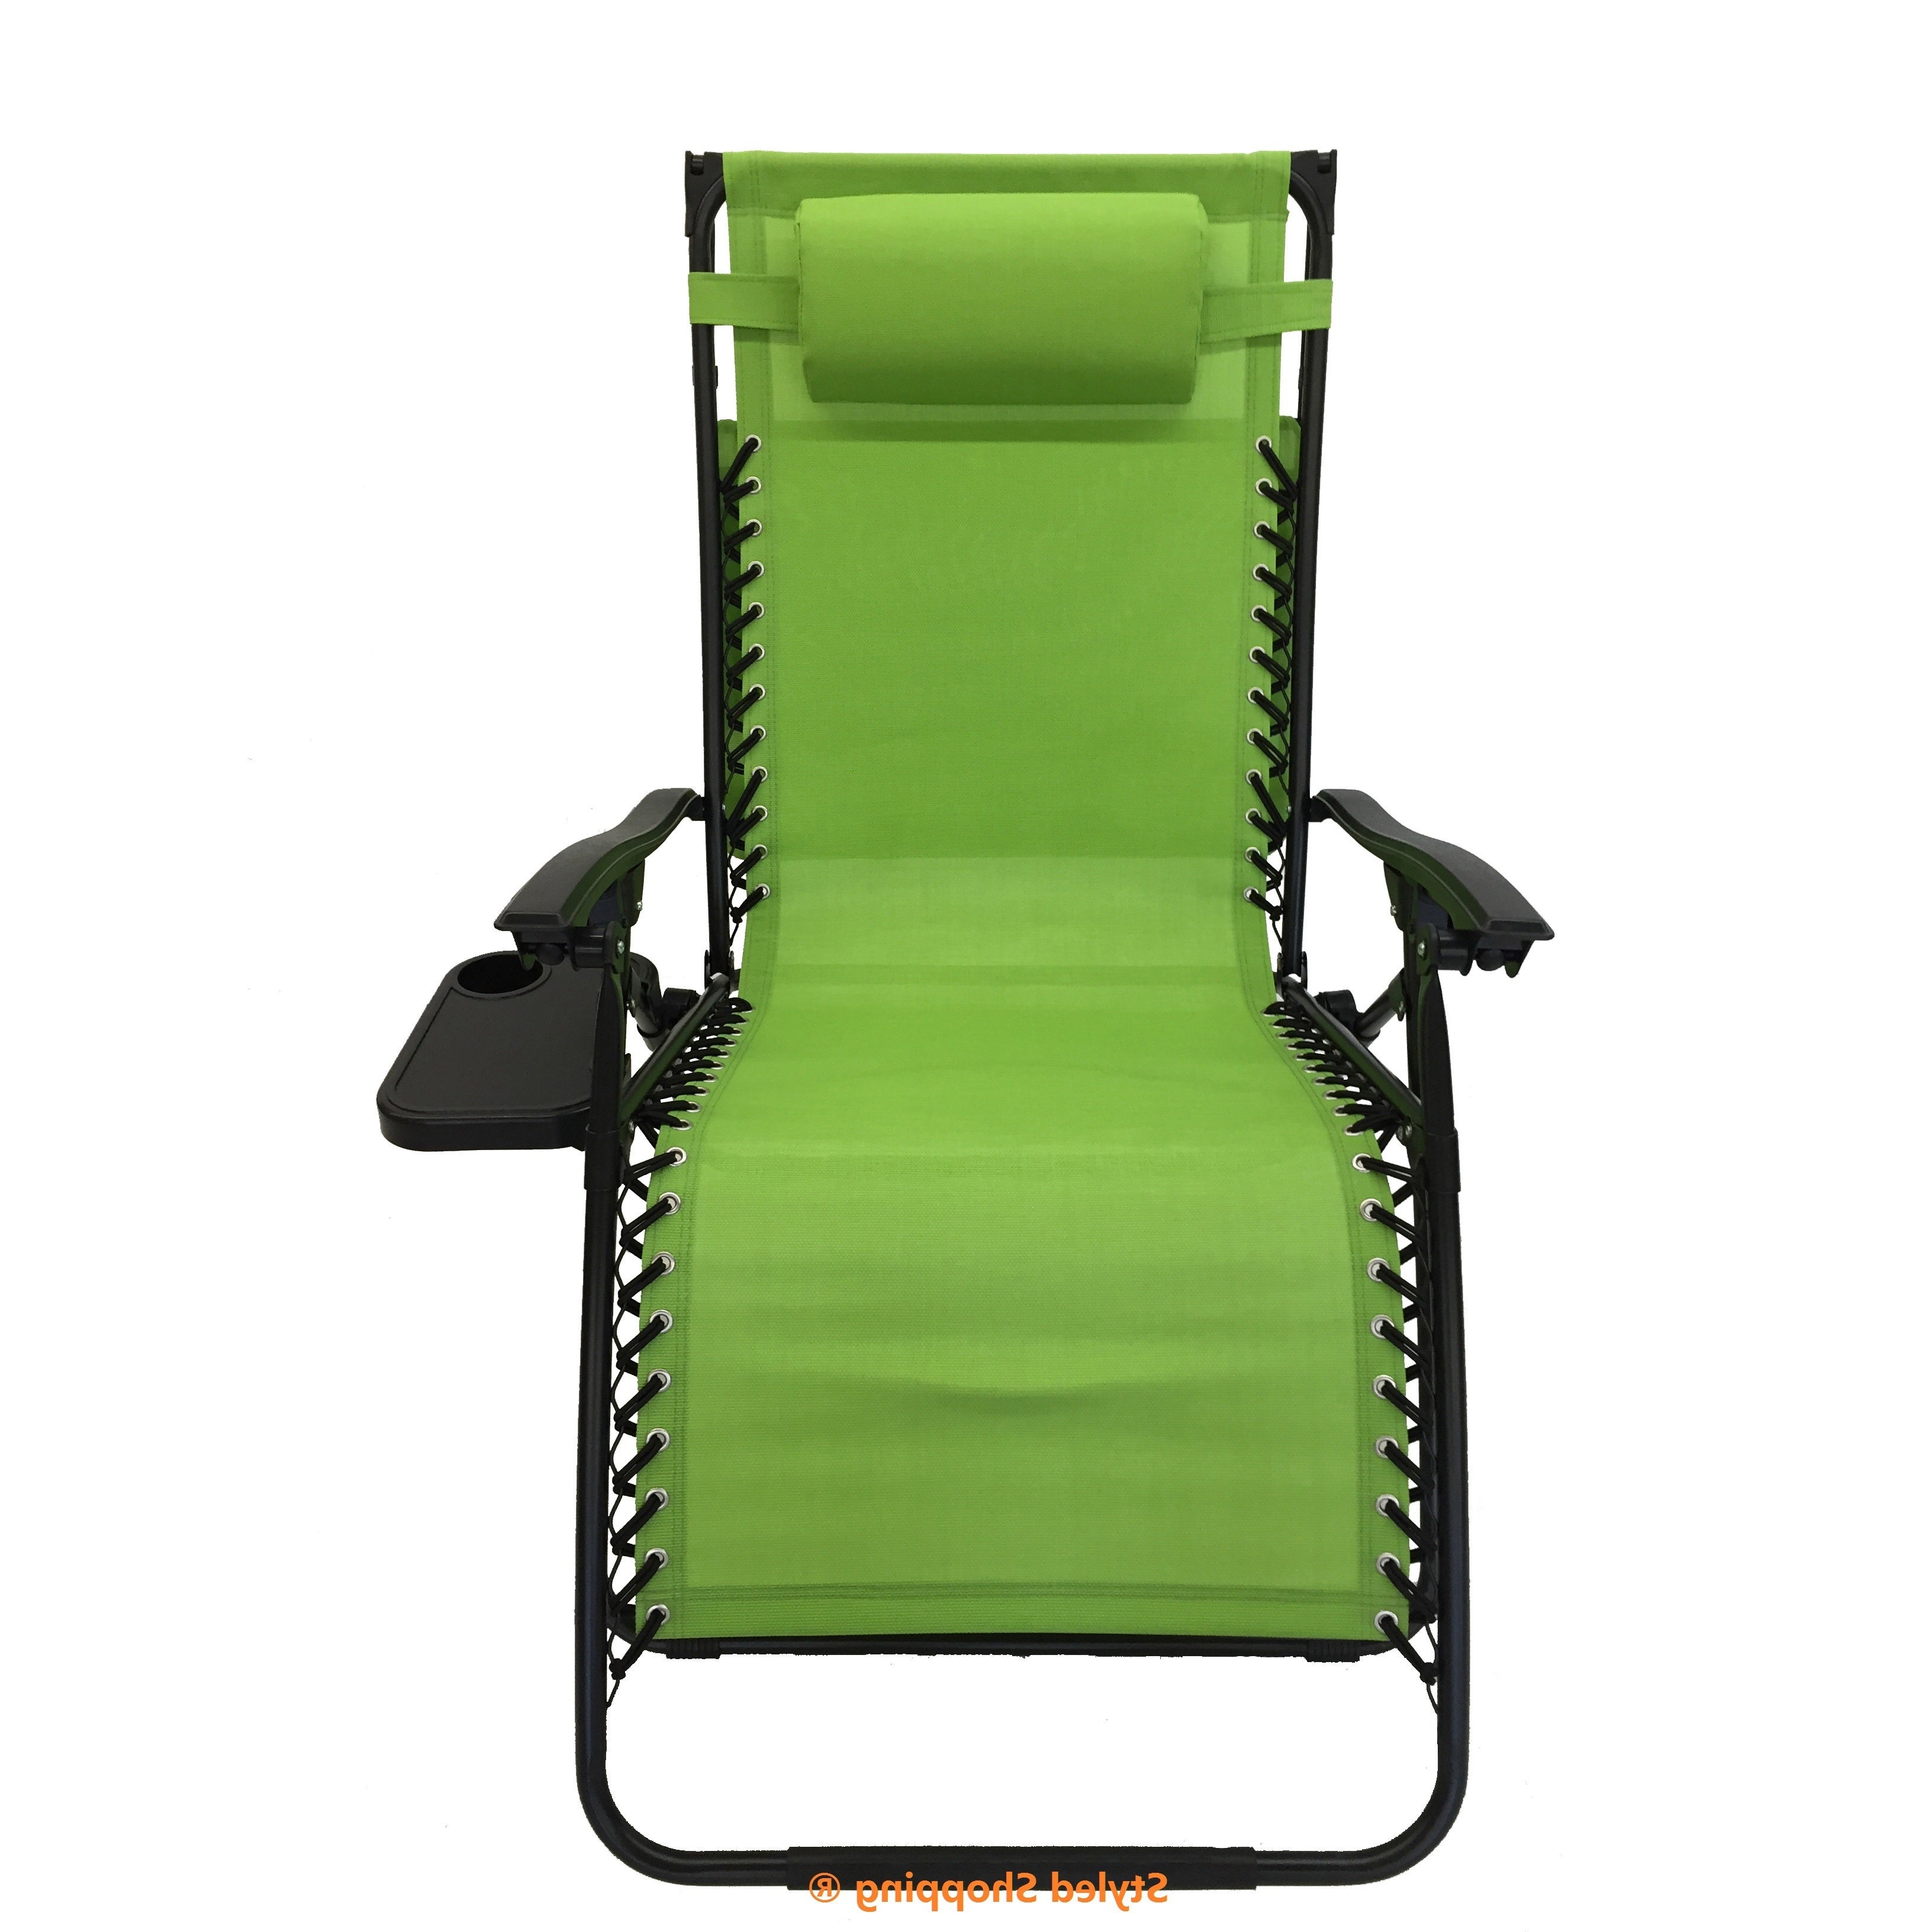 Most Popular Oversized Extra Large Chairs With Canopy And Tray Inside Mesh Fabric With Steel Frame Zero Gravity Chair With Canopy And Tray (View 13 of 25)